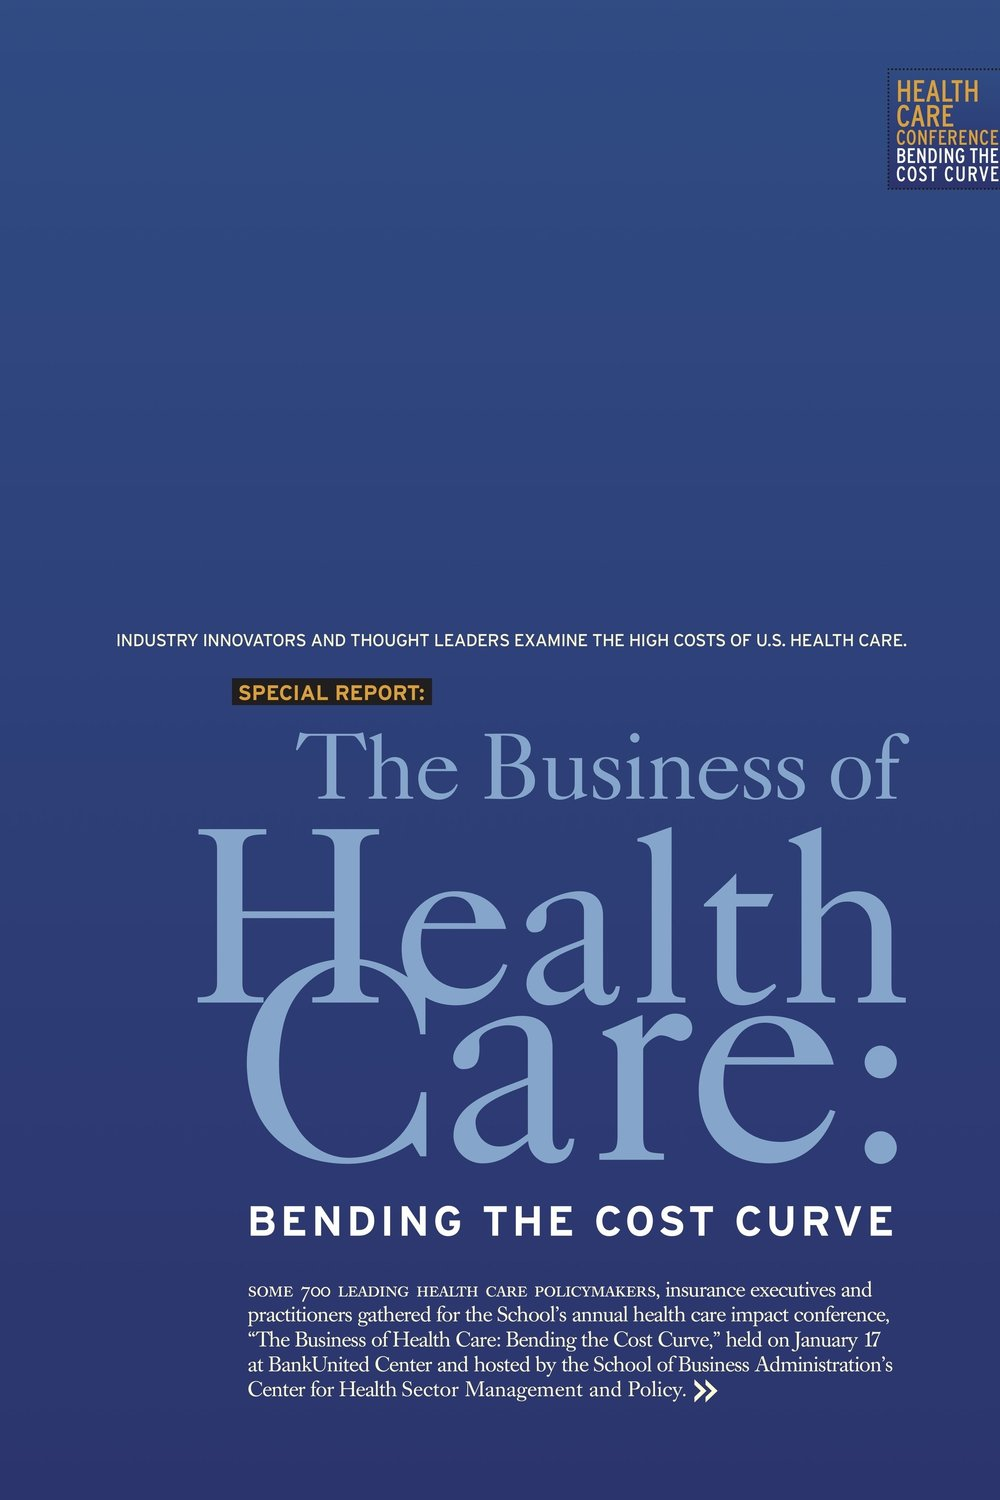 The Business of Health Care - Full online and print coverage of the day-long University of Miami conference.